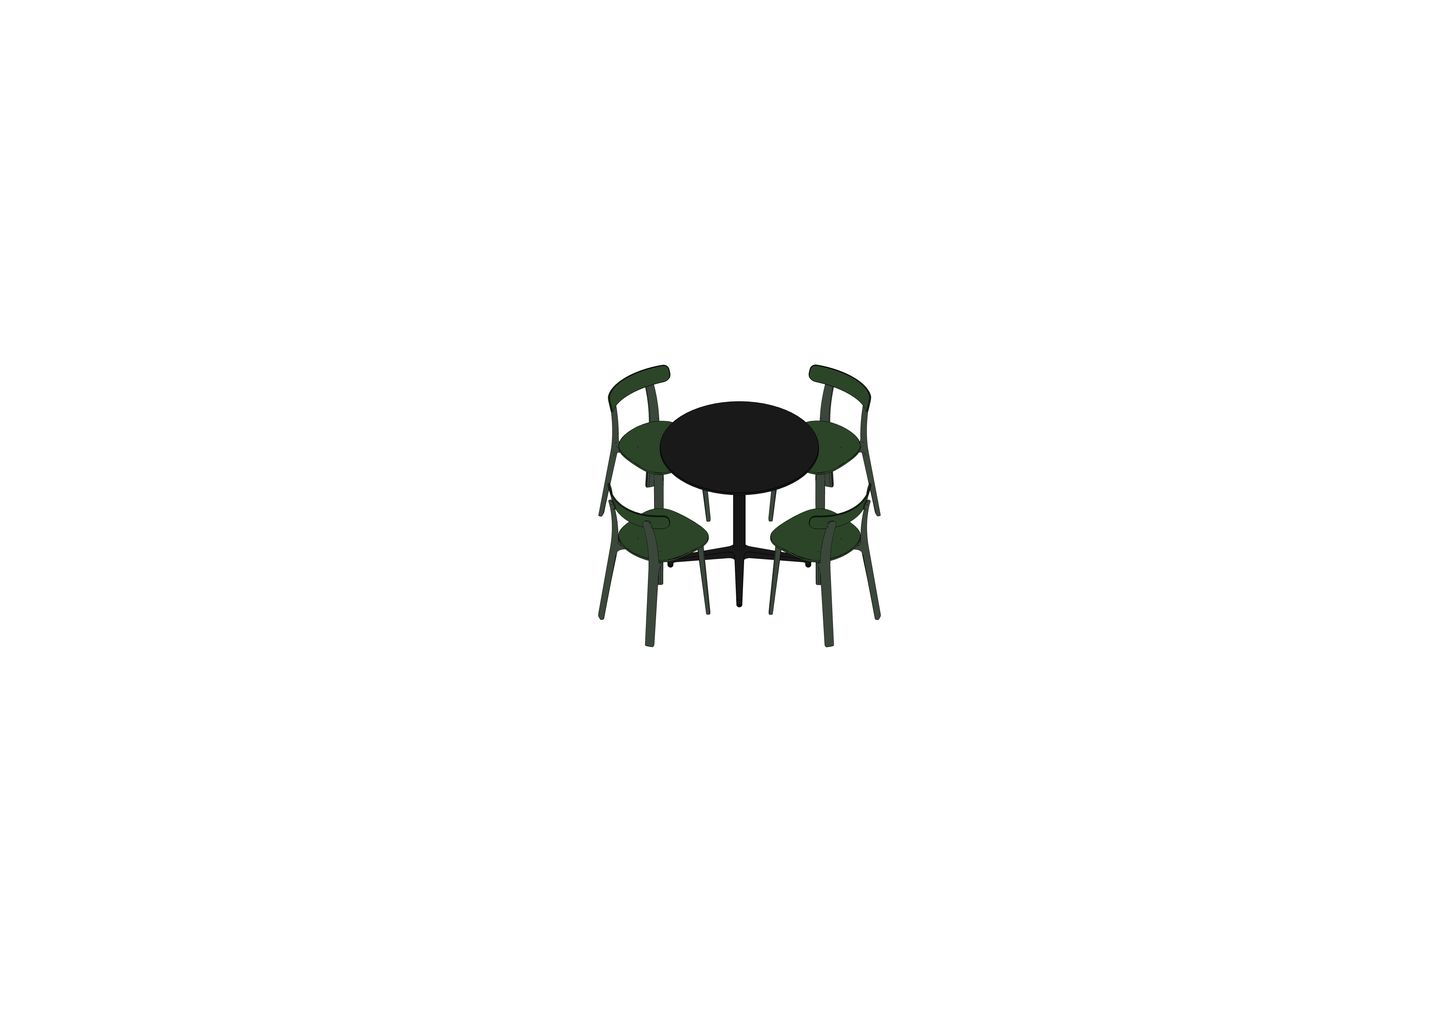 04 - Bistro Table, All Plastic Chair -3D